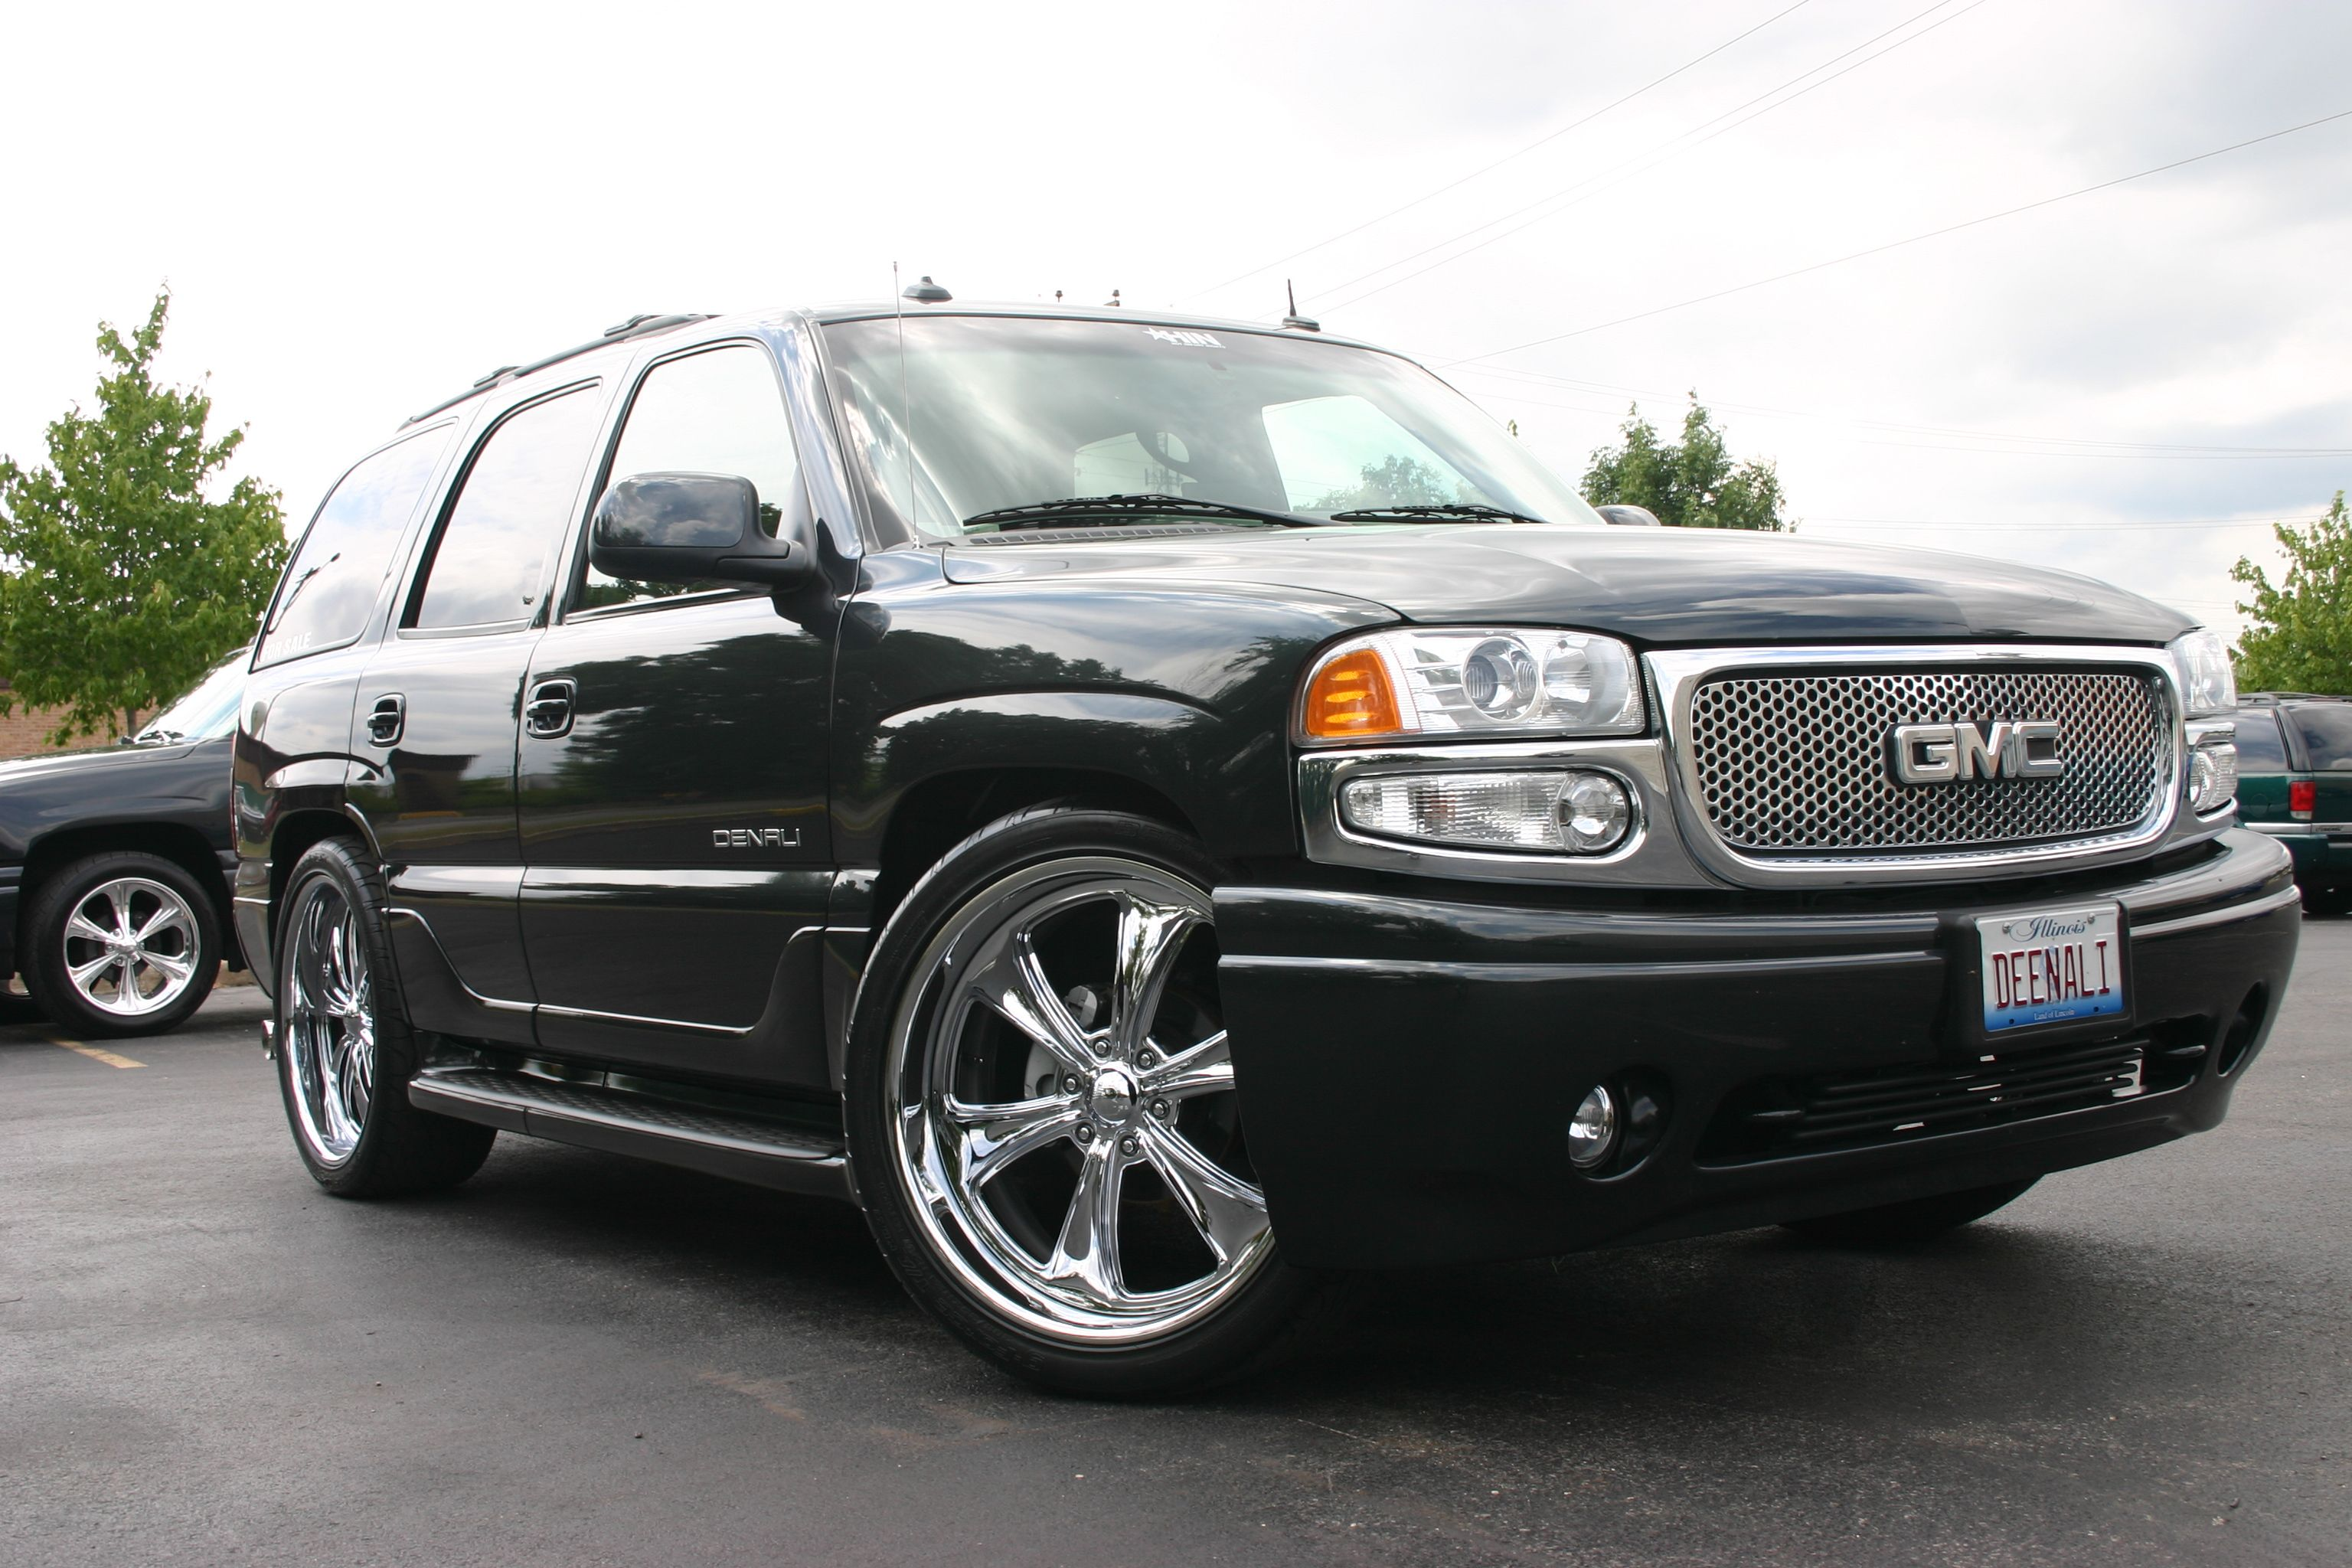 Billet Specialties Slc63 Wheels On 2002 Yukon Denali With Images